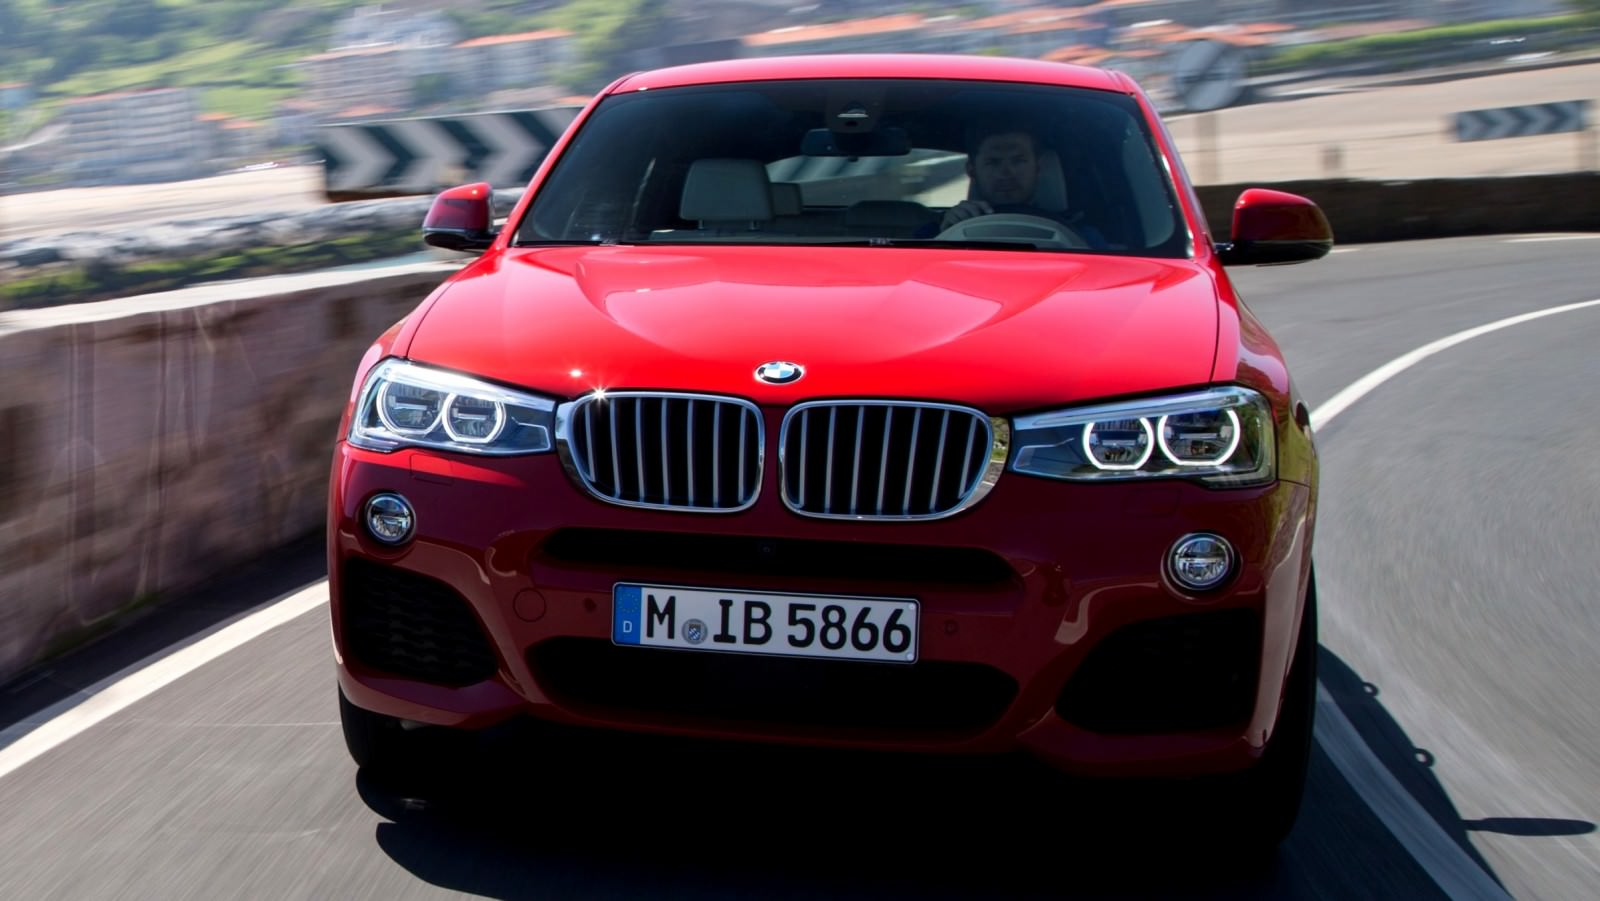 Update2 Debut Photos - 2015 BMW X4 Arriving Now to USA BMW Dealers 44